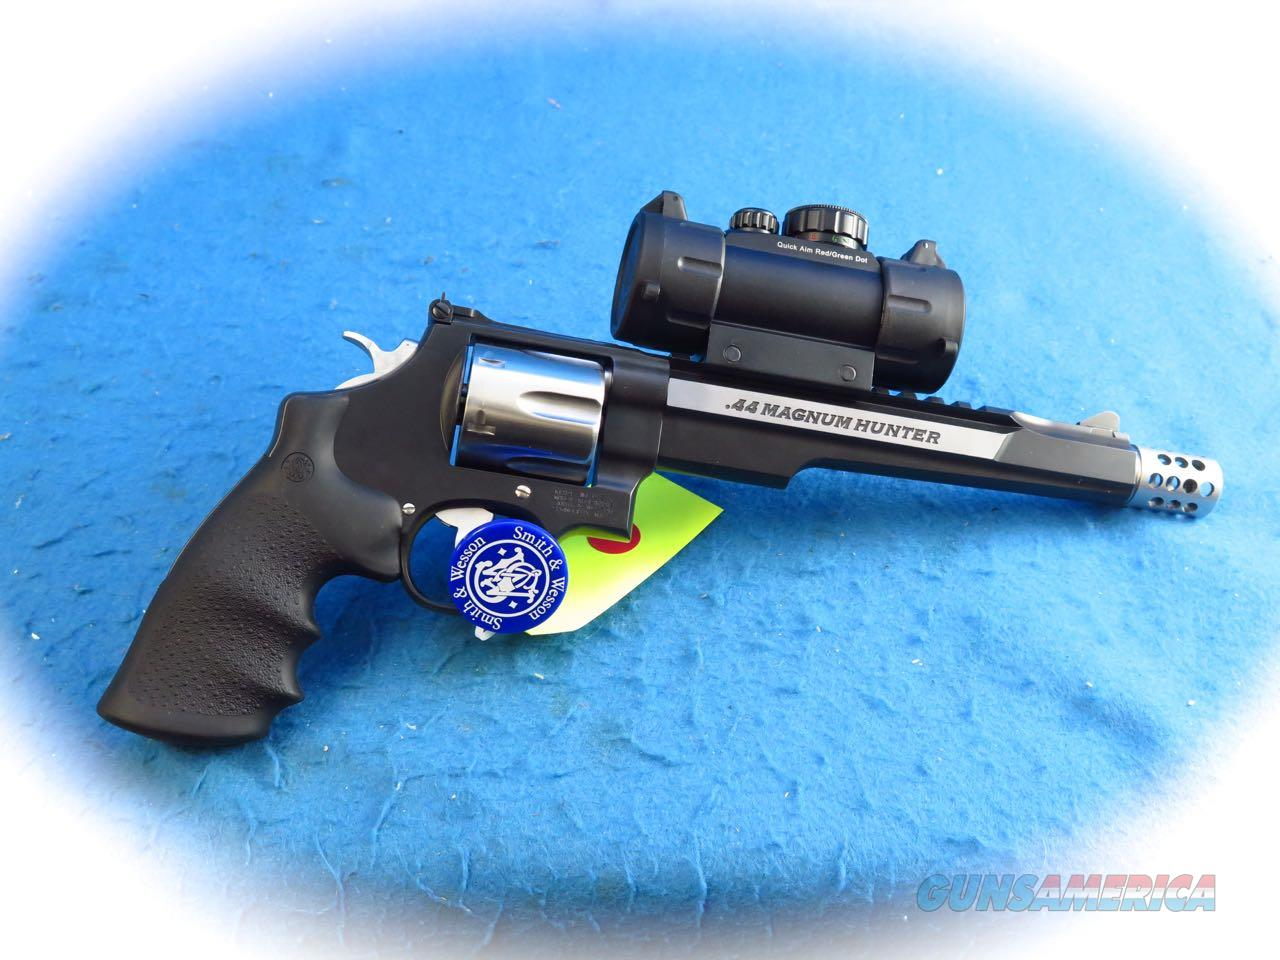 Smith & Wesson Performance Center Model 629 .44 Magnum Hunter SKU 170318 **New**  Guns > Pistols > Smith & Wesson Revolvers > Performance Center